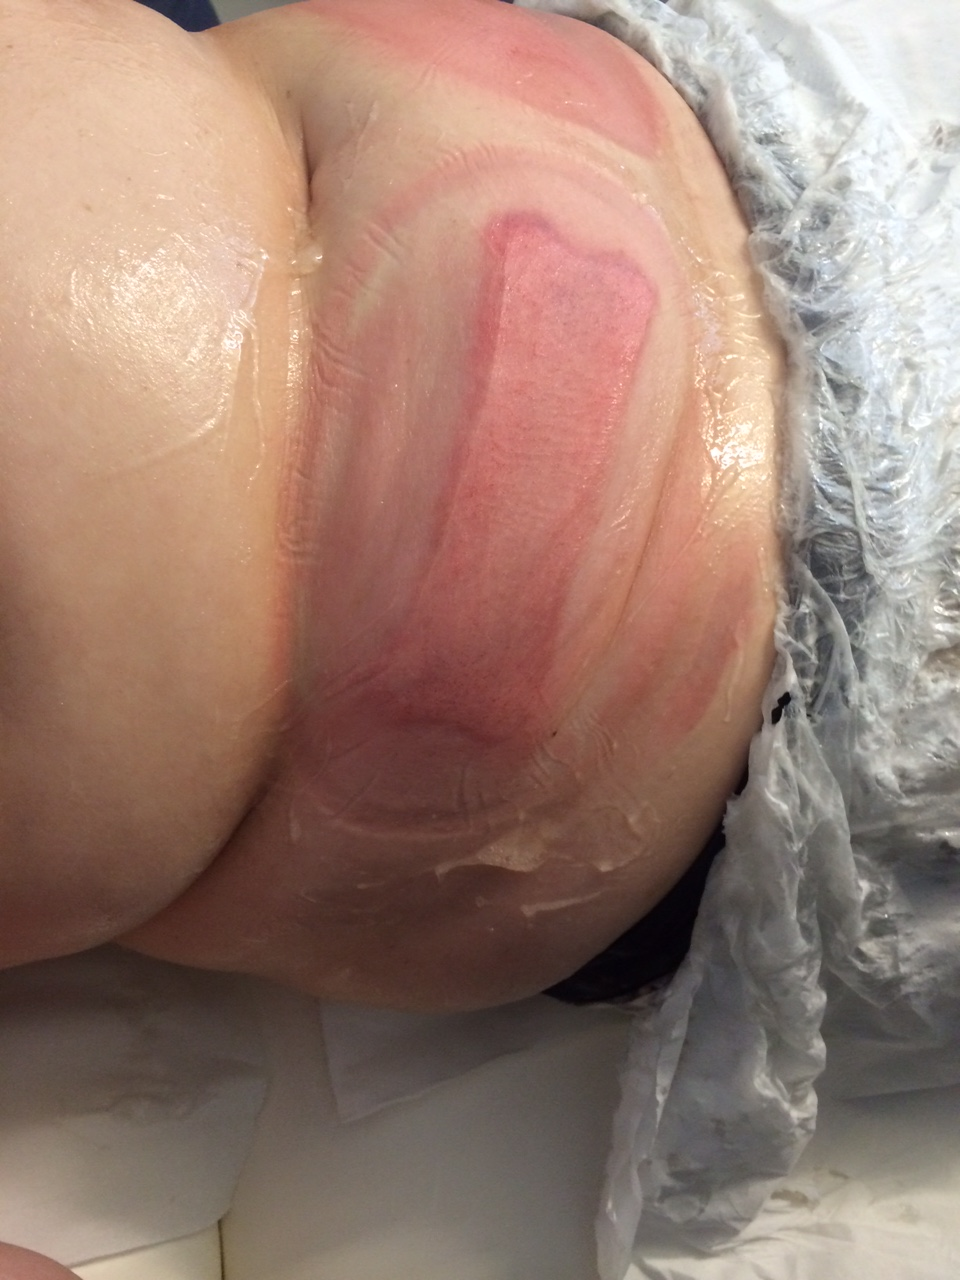 After the CoolTech treatment the fat raises to the surface, which looked like packs of butter before its massaged down